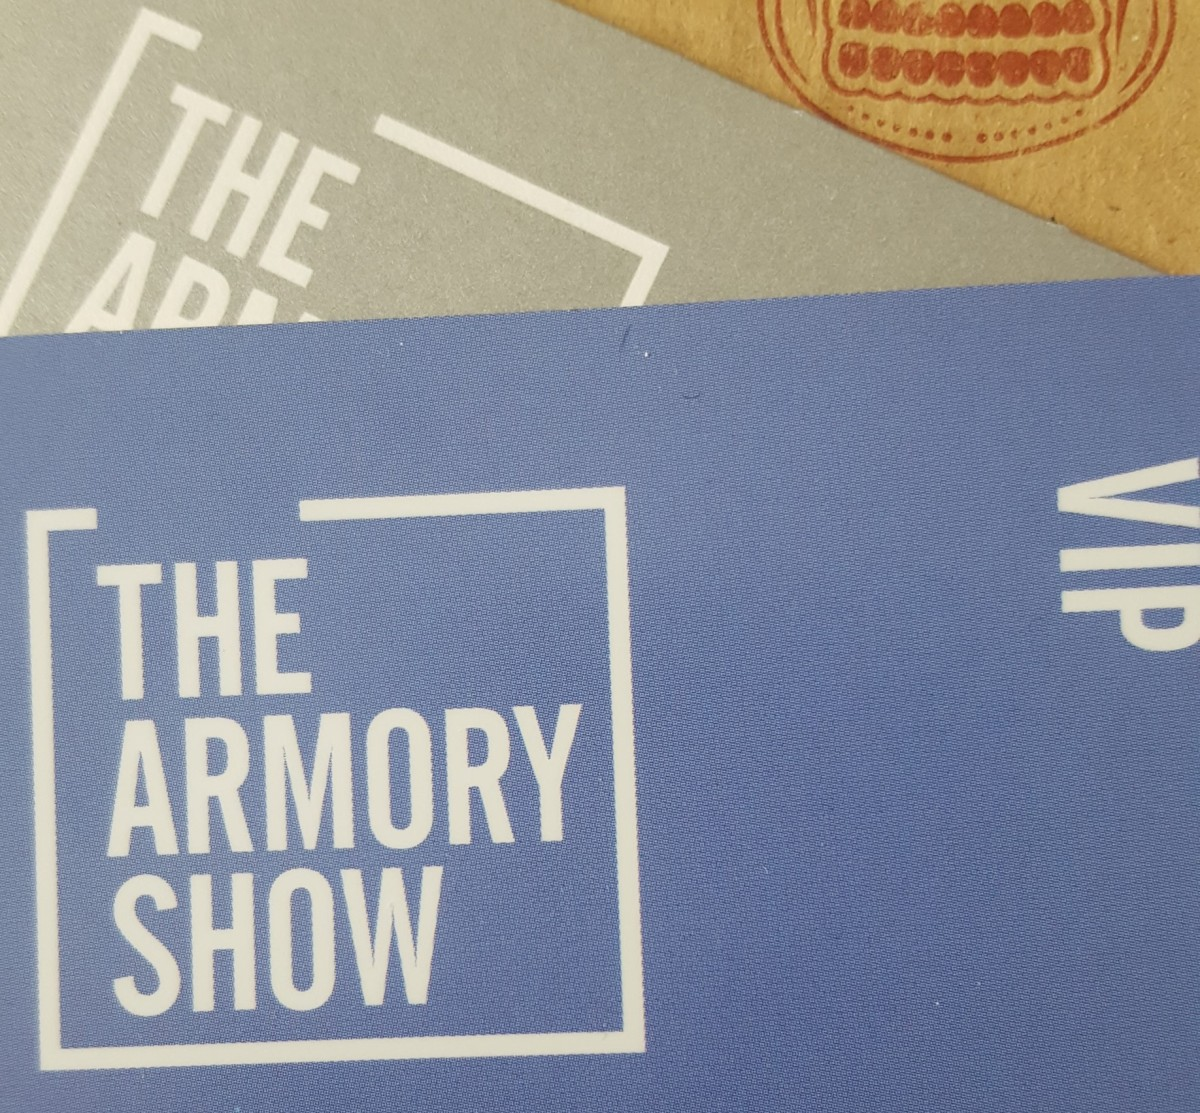 Art & The Armory